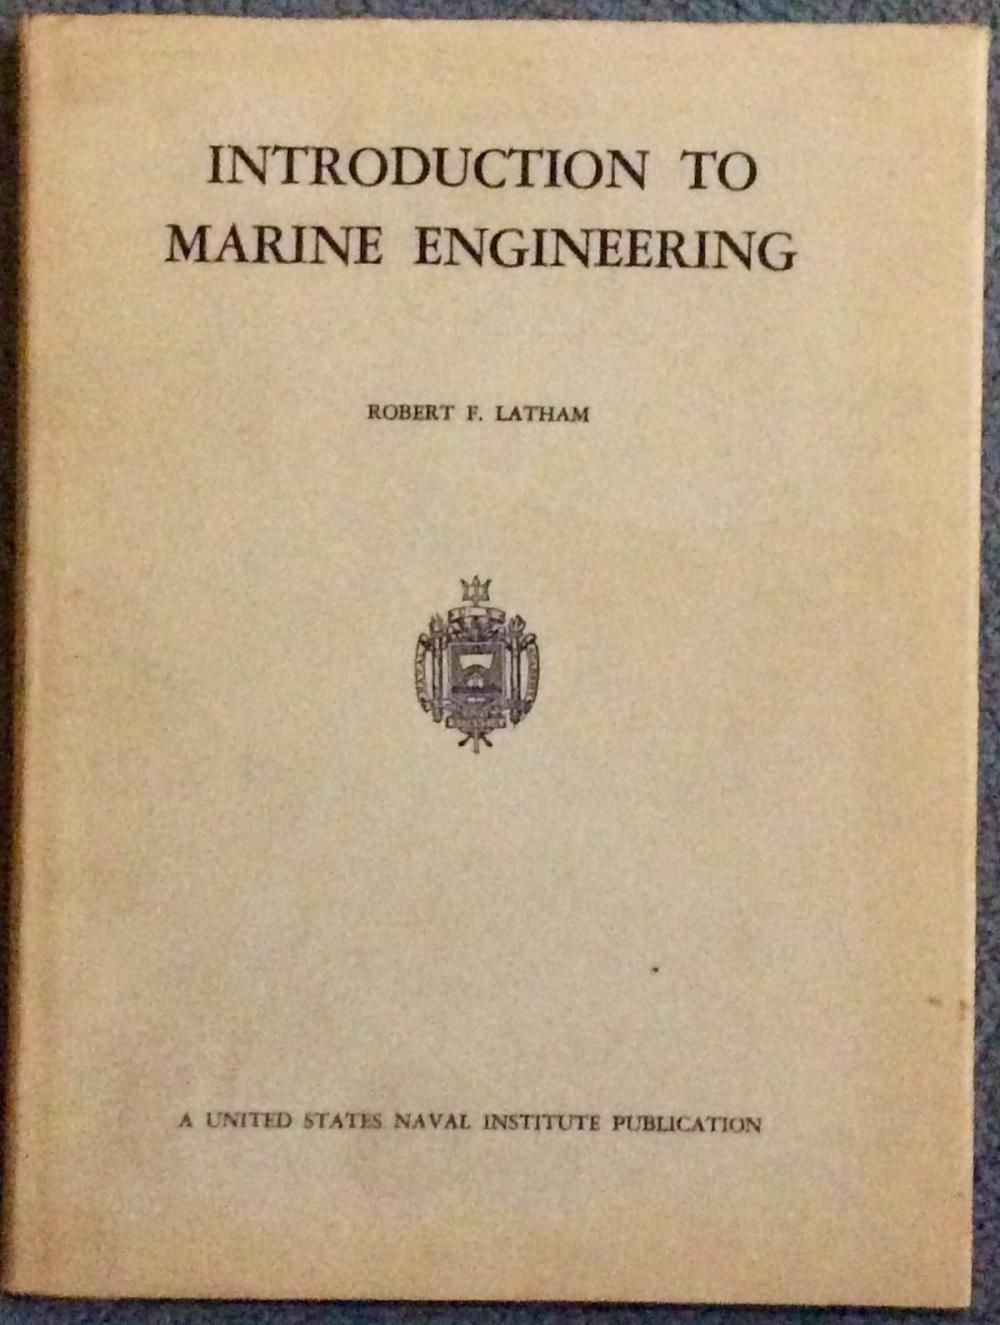 """Introduction To Marine Engineering"" by Robert Latham VINTAGE 1958 Hardcover Marine Engineering Technical Book 1st Edition 1st Printing  In DJ"